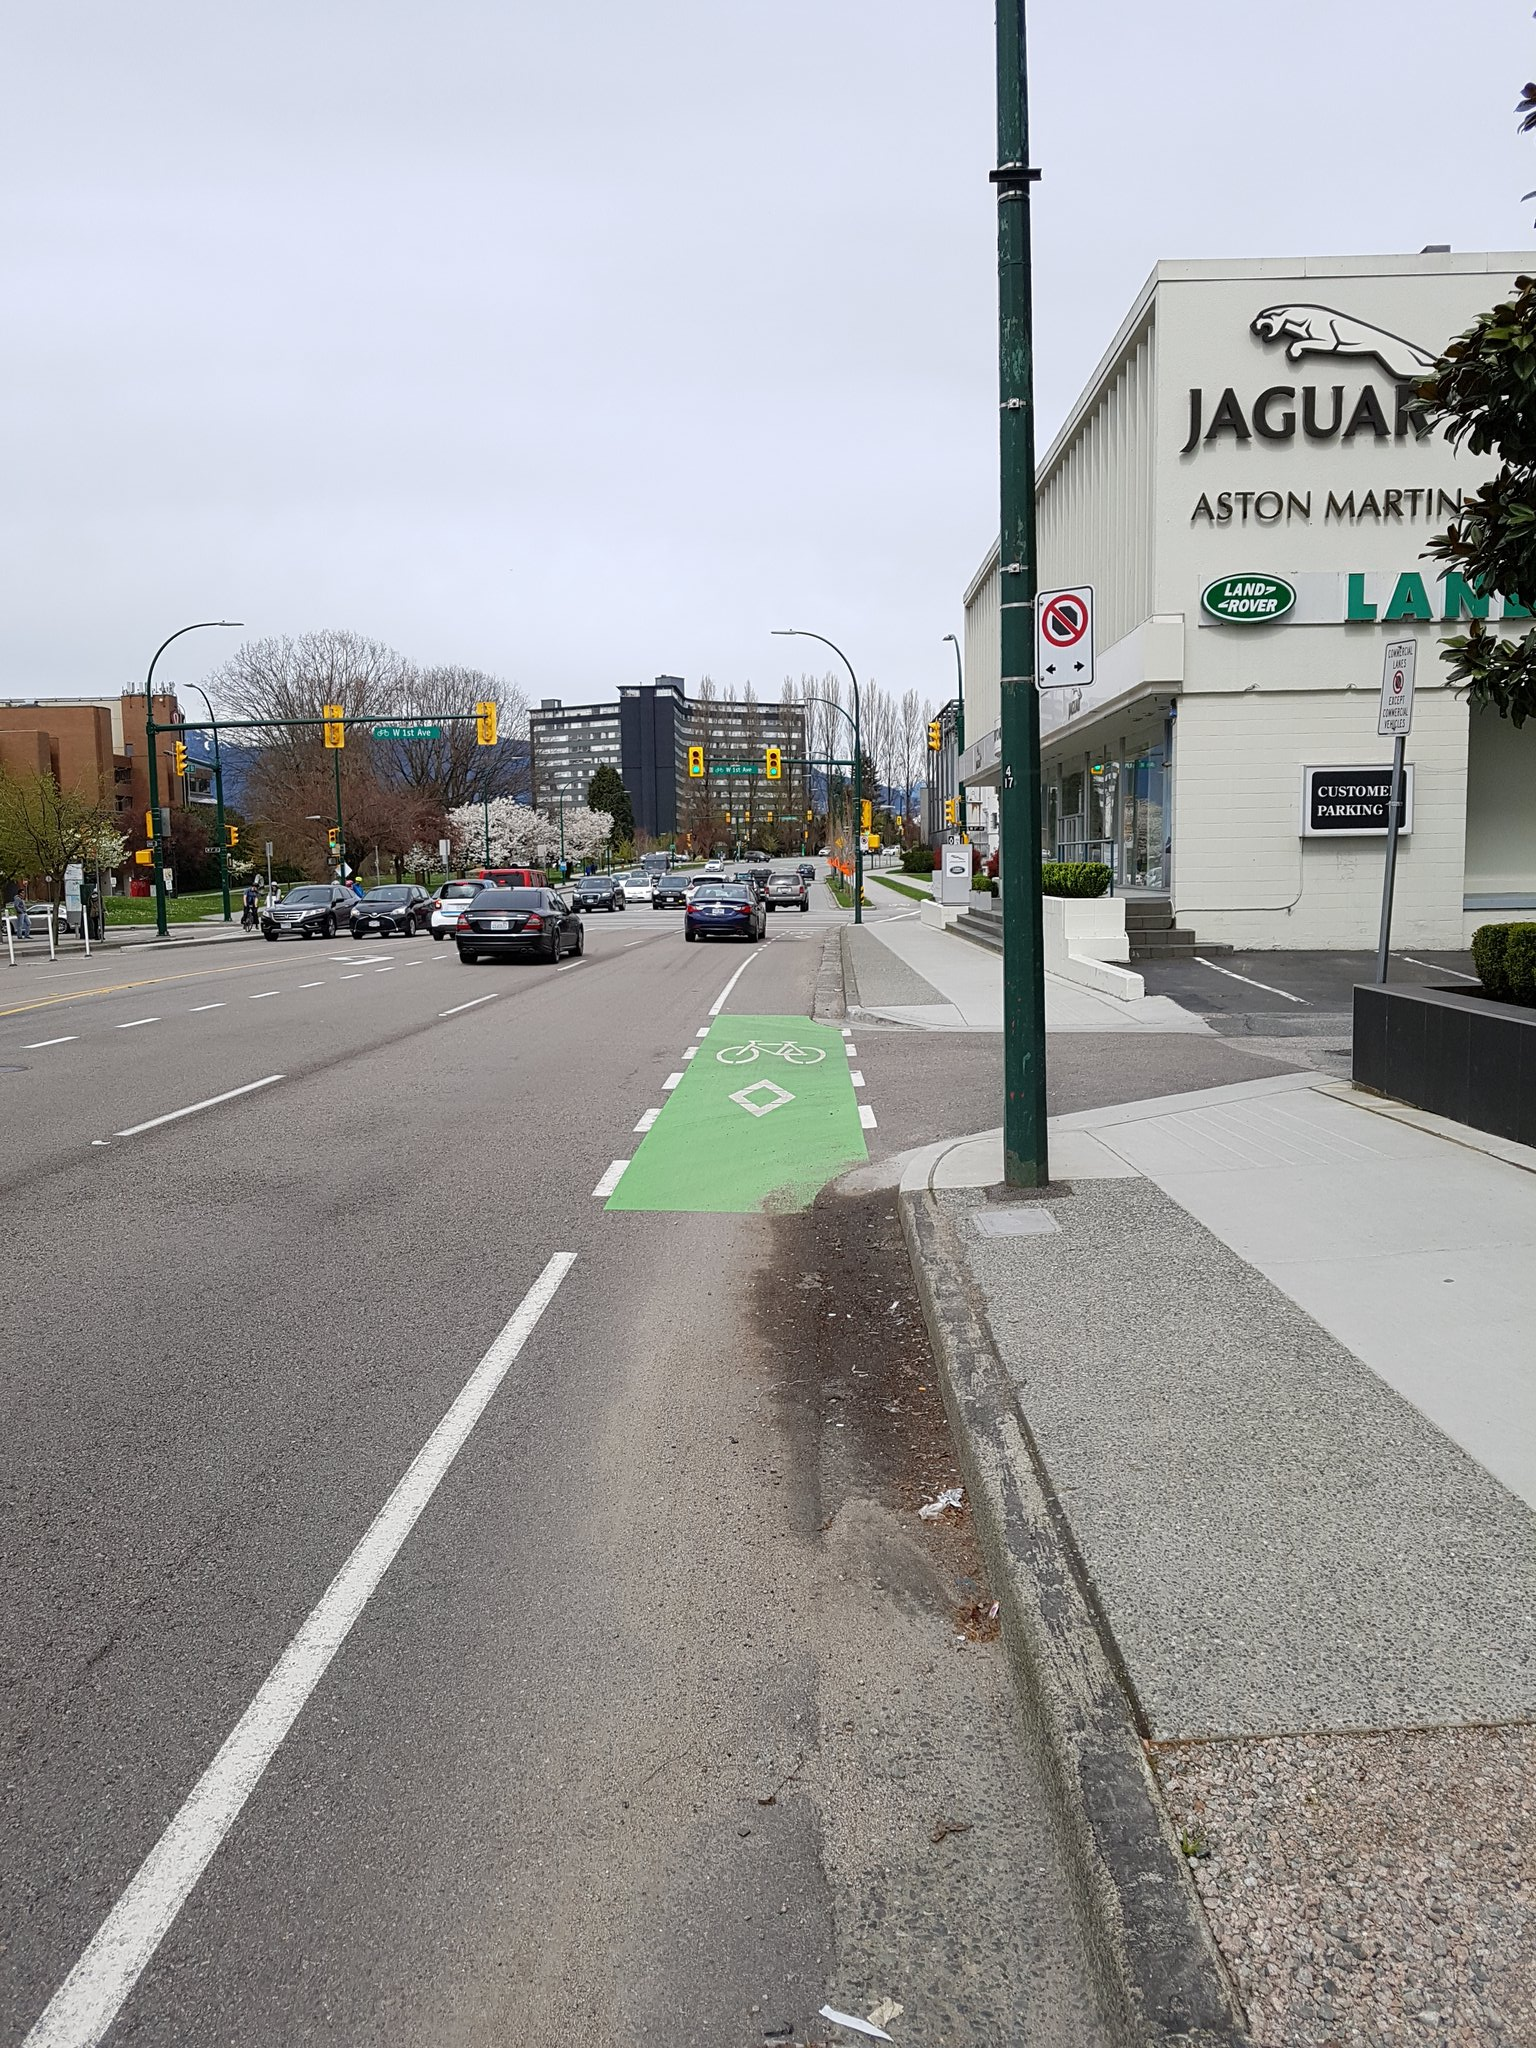 Back toward the Burrard Bridge, the north-bound lane isn't yet protected or even complete from Arbutus Greenway to the bridge #yyjbike https://t.co/95mPvmprL5